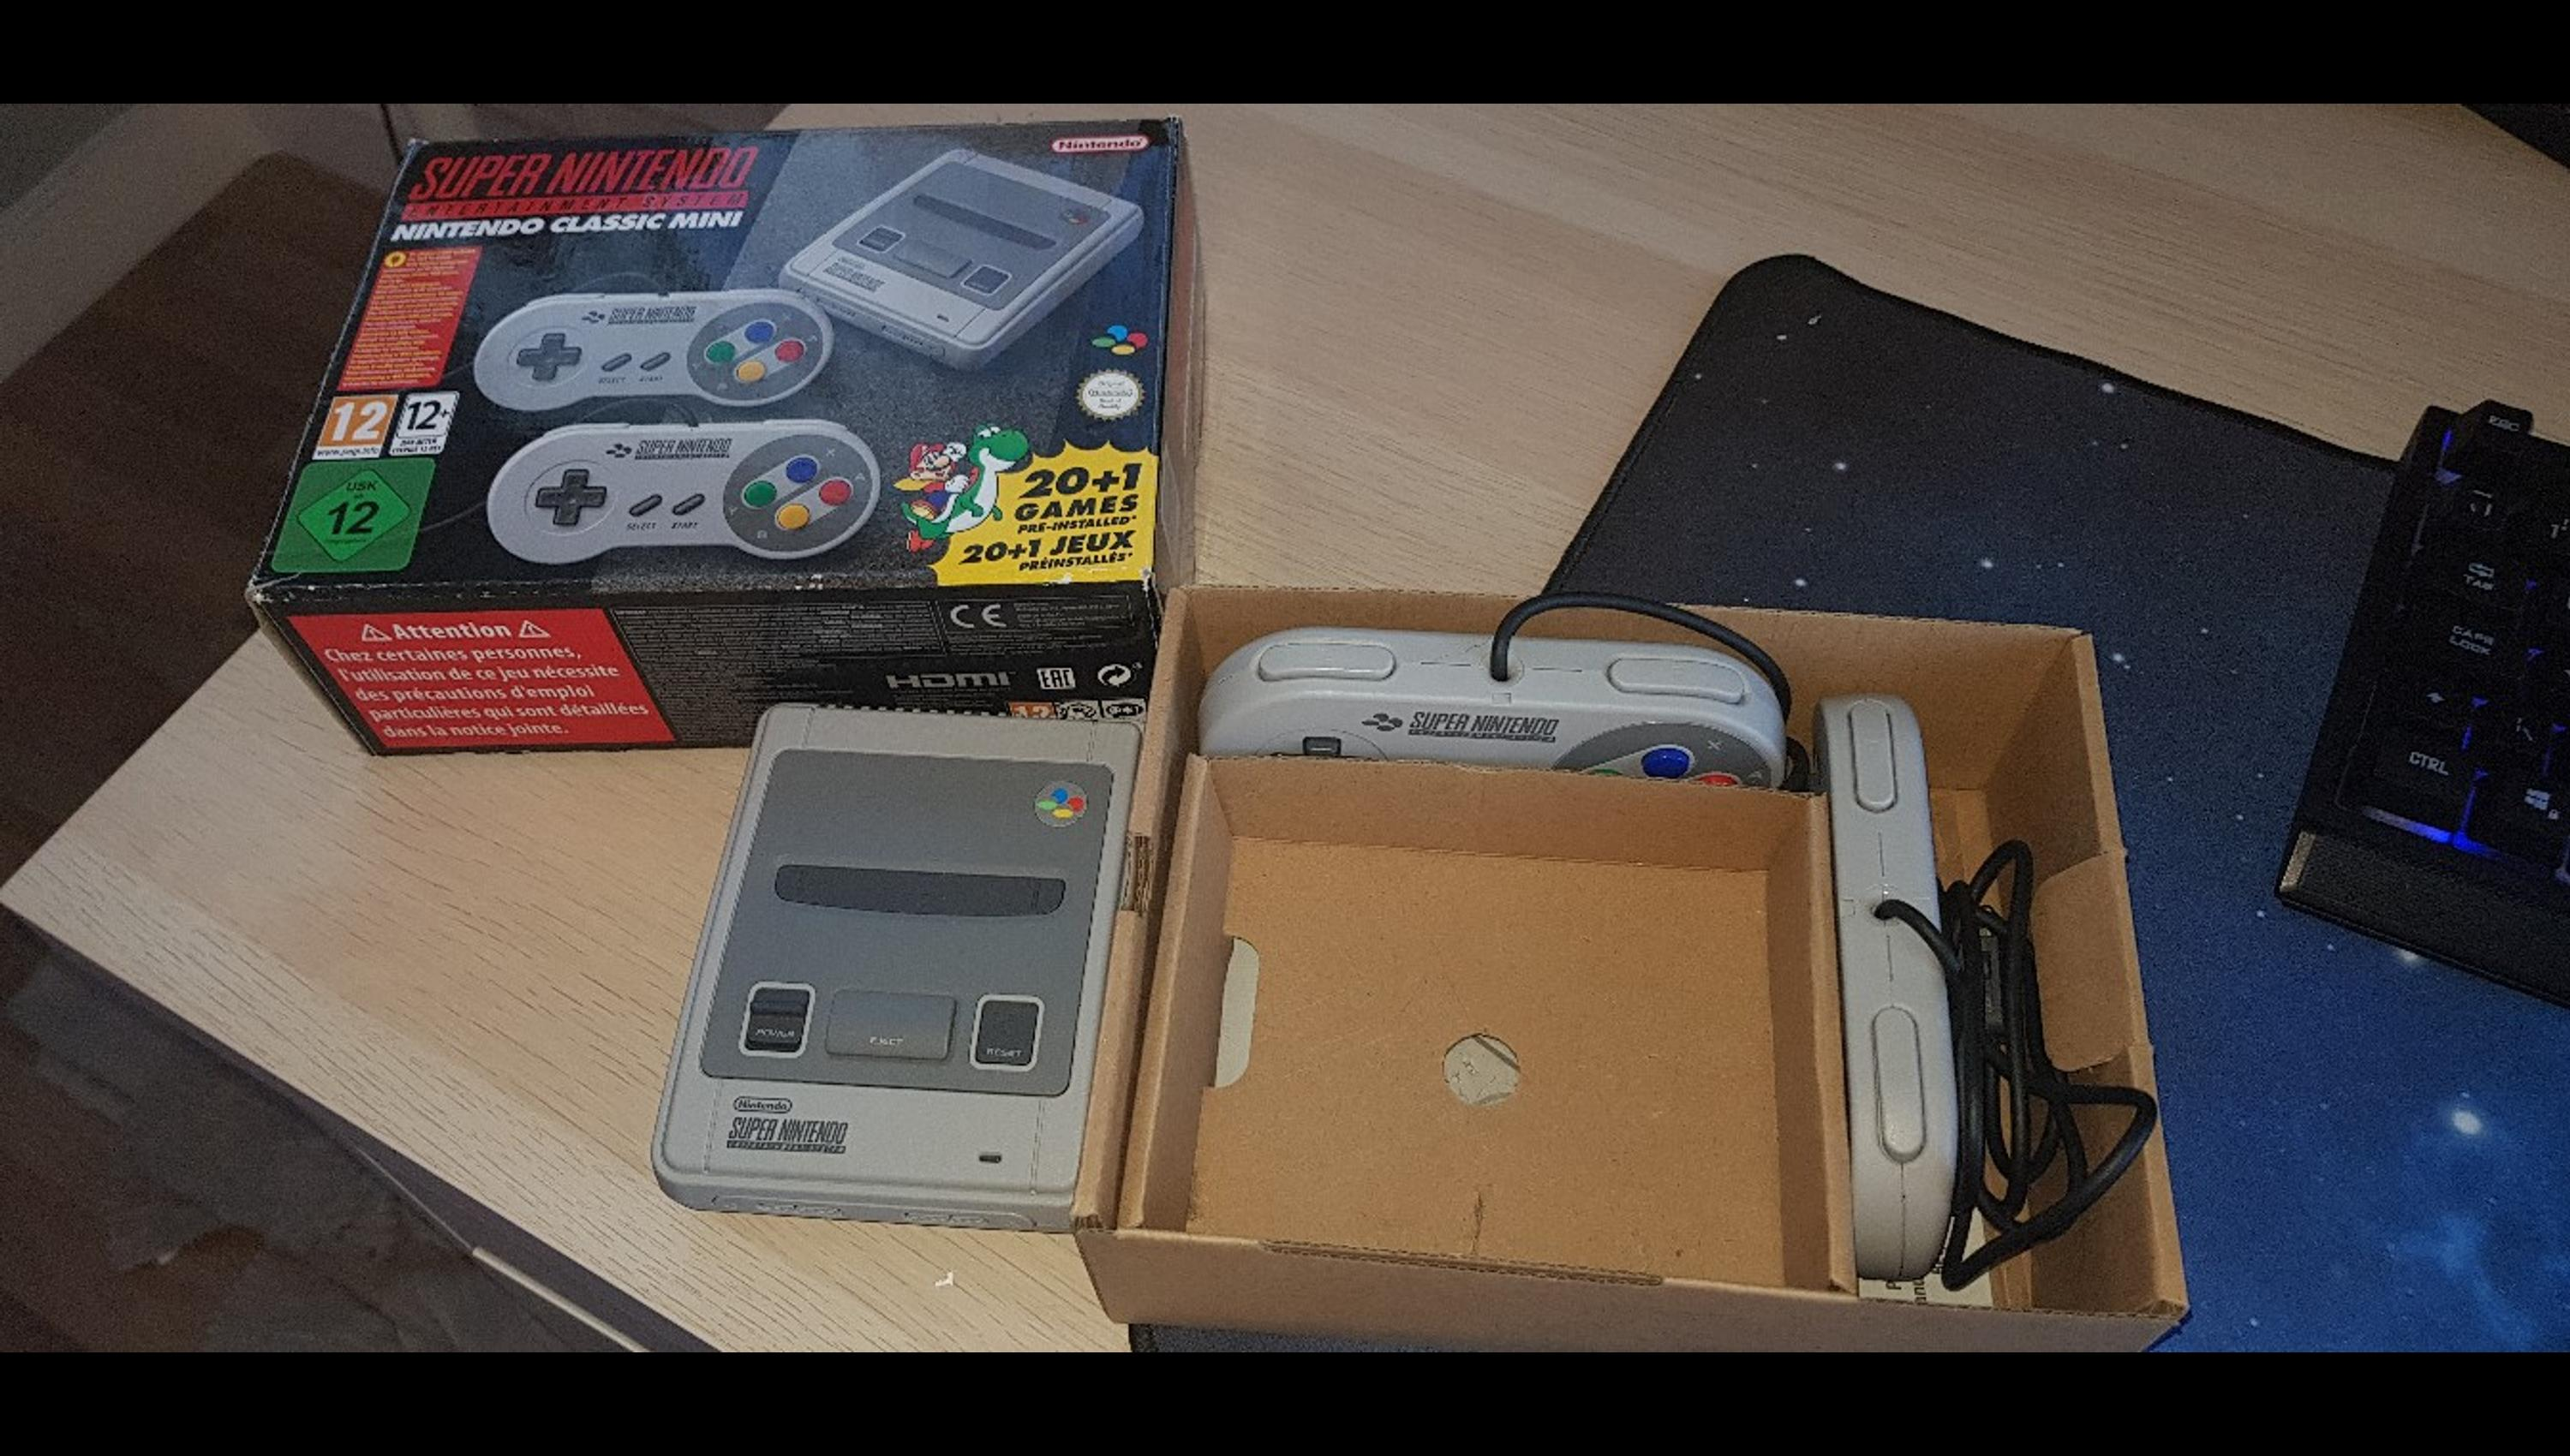 Offical Super Nintendo Mini with 250 games